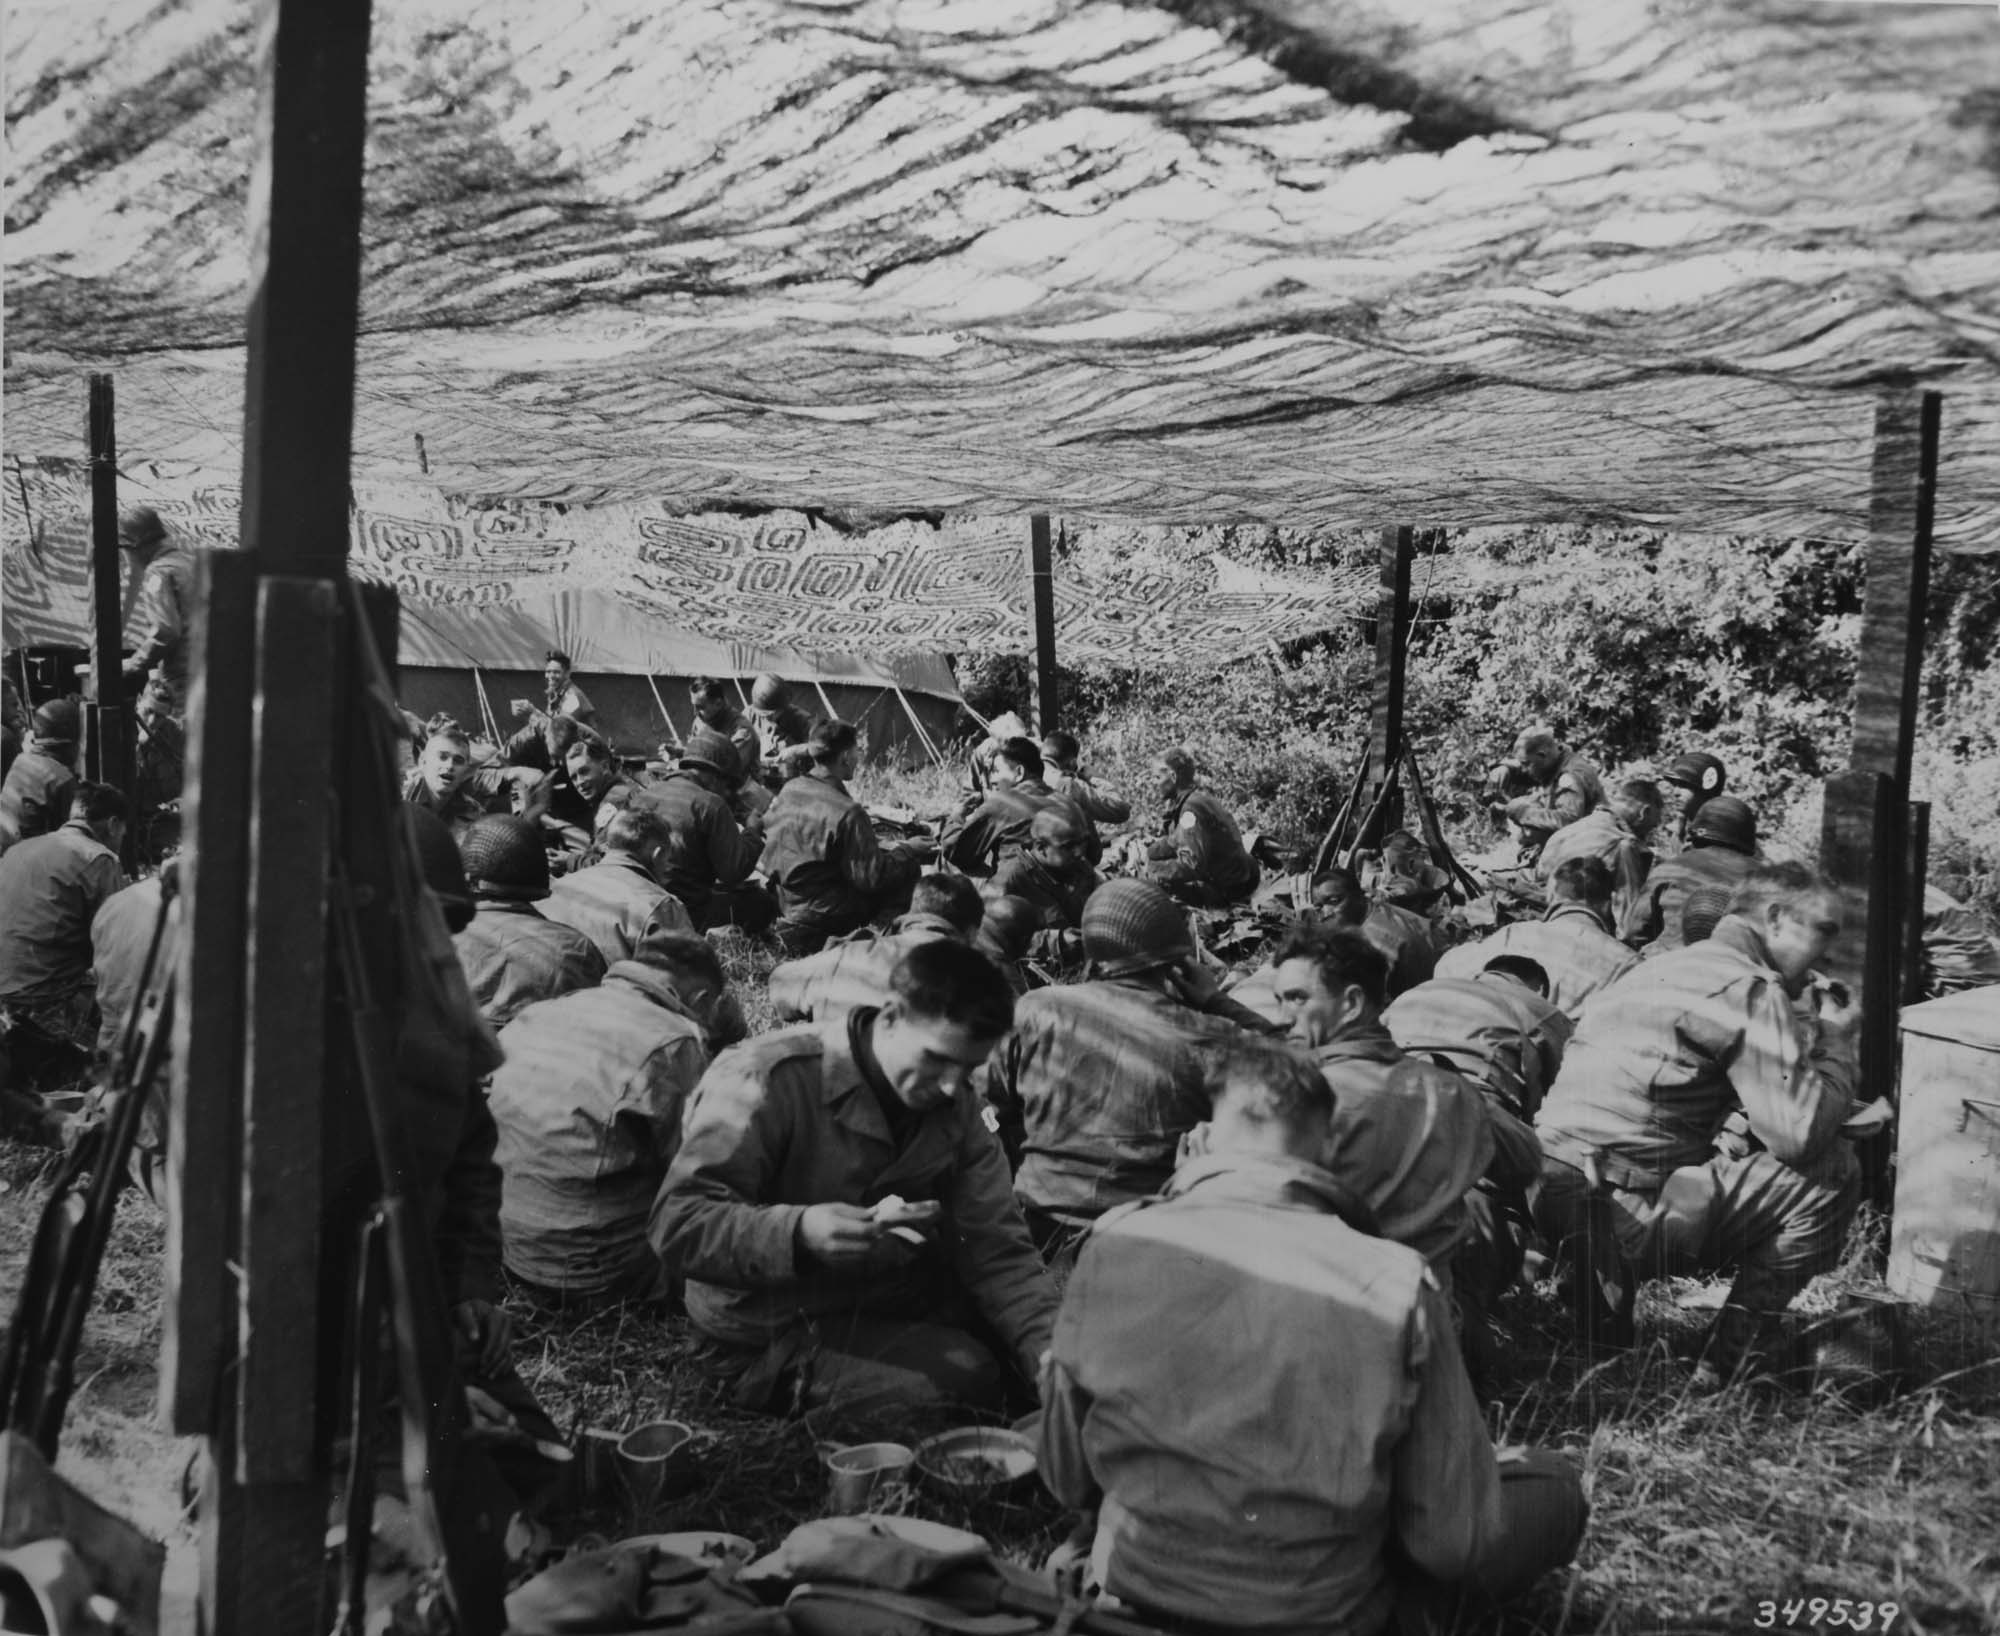 a photo of a large group of seated soldiers eating beneath a camouflage net